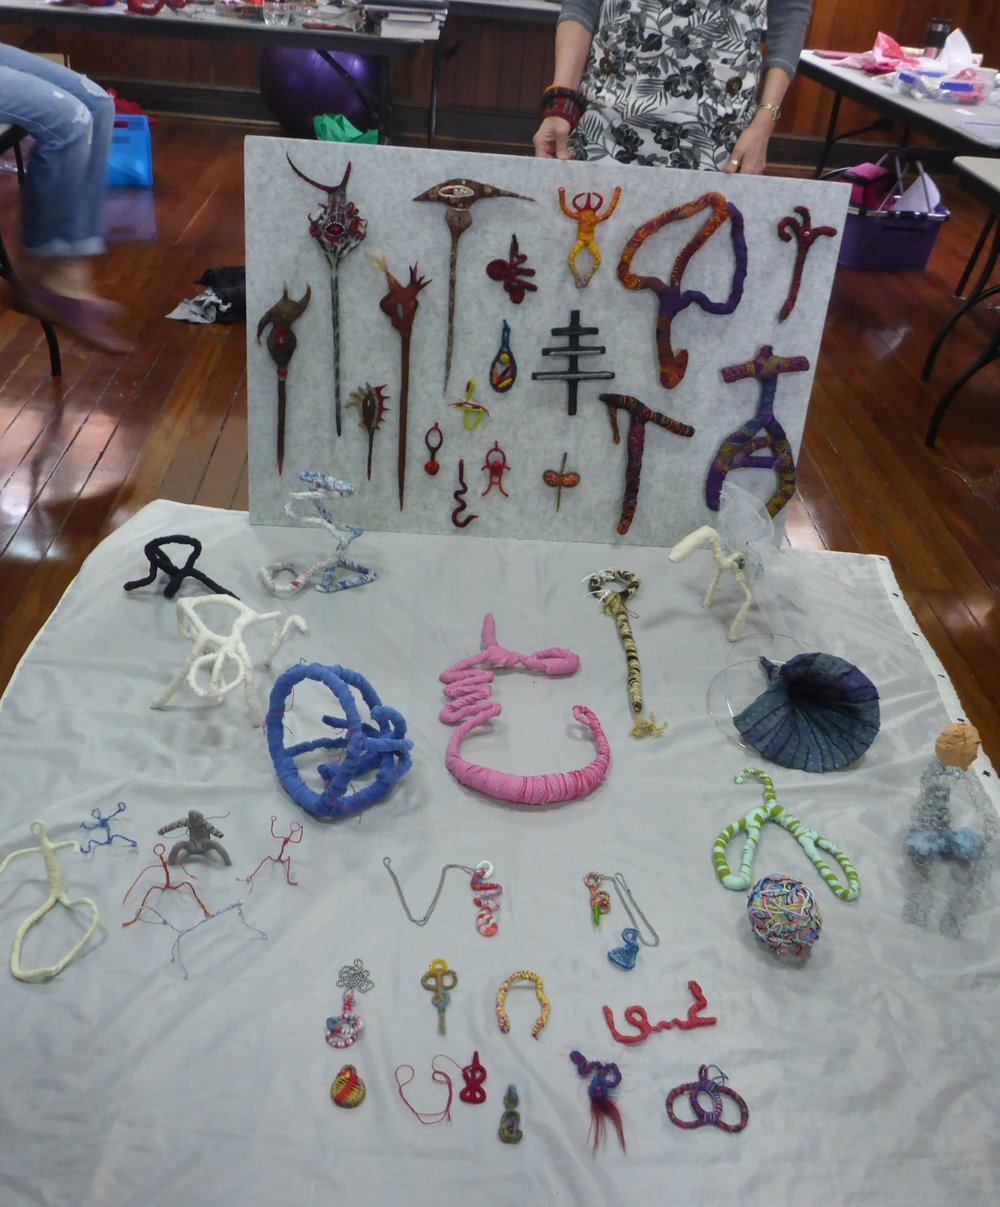 Participants'outcomes plus display board of KV's pieces at a workshop on textiles and wire armatures for WAFTA